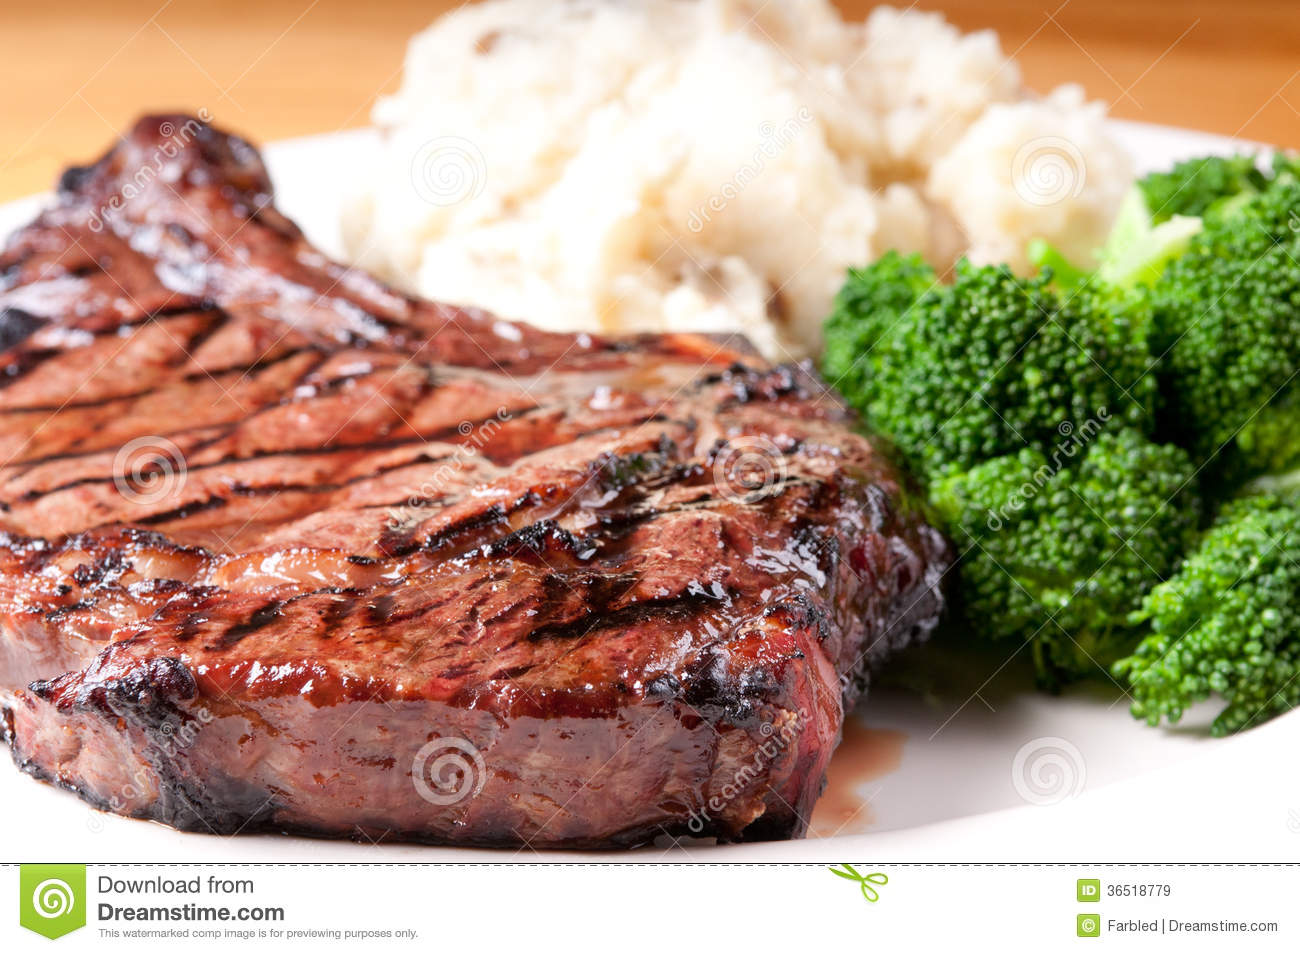 Rib steak with garlic mashed potatooes and brocolli